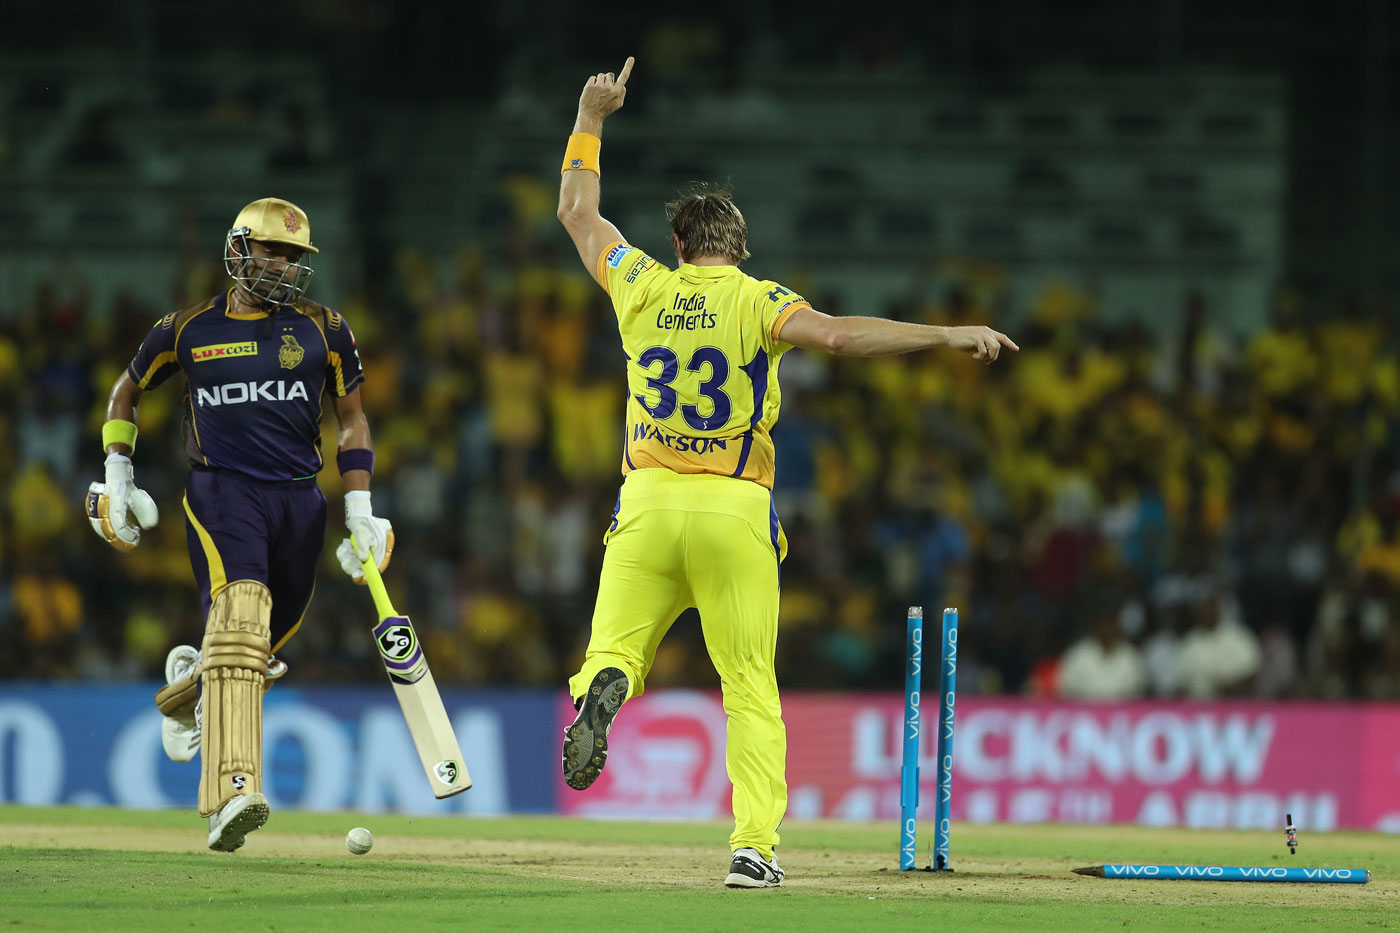 #CSKvKKR - Billings takes CSK to a thrilling second win